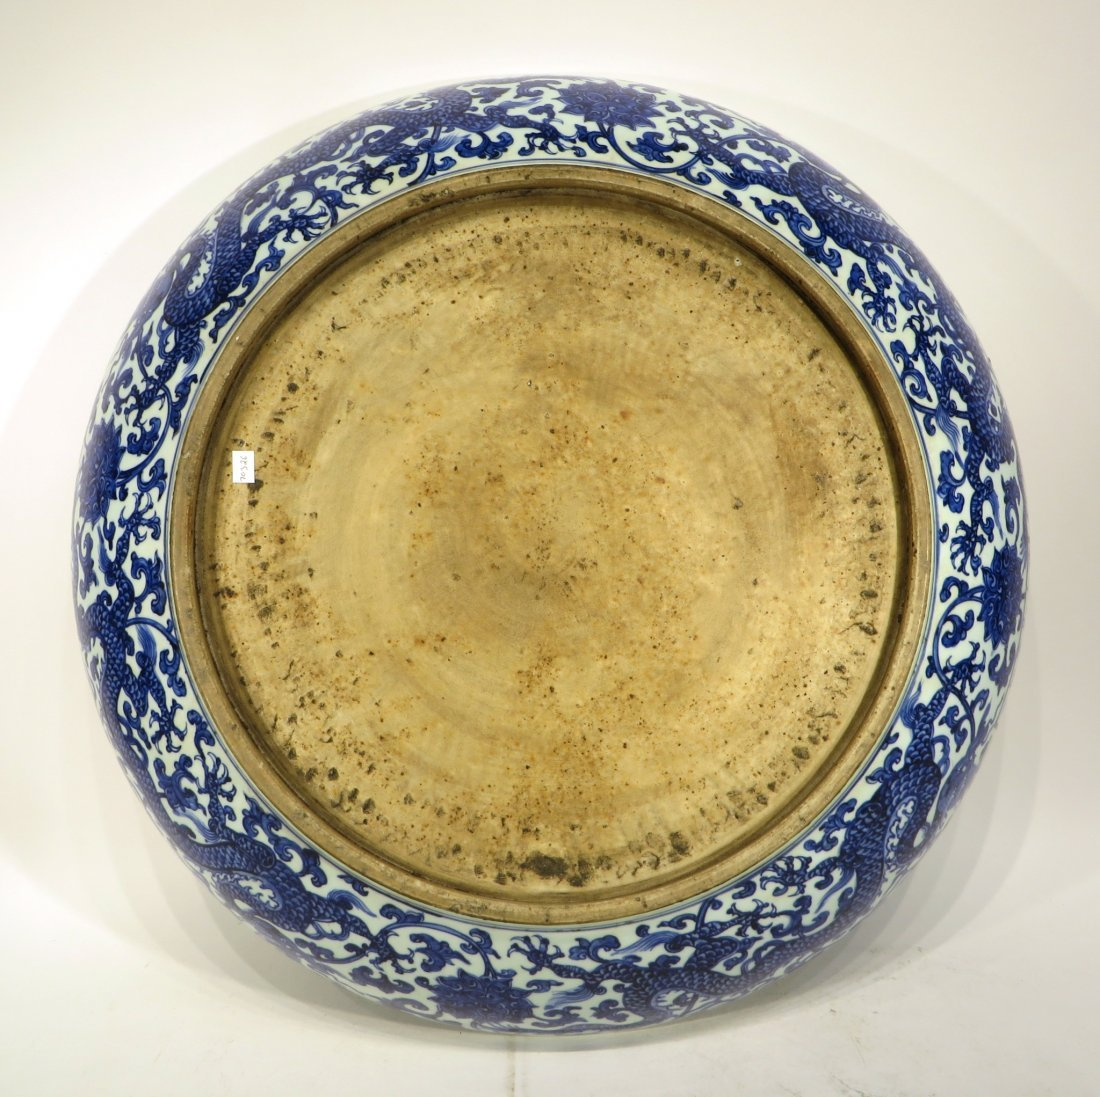 MING DYNASTY LARGE BLUE AND WHITE PLATE - 8